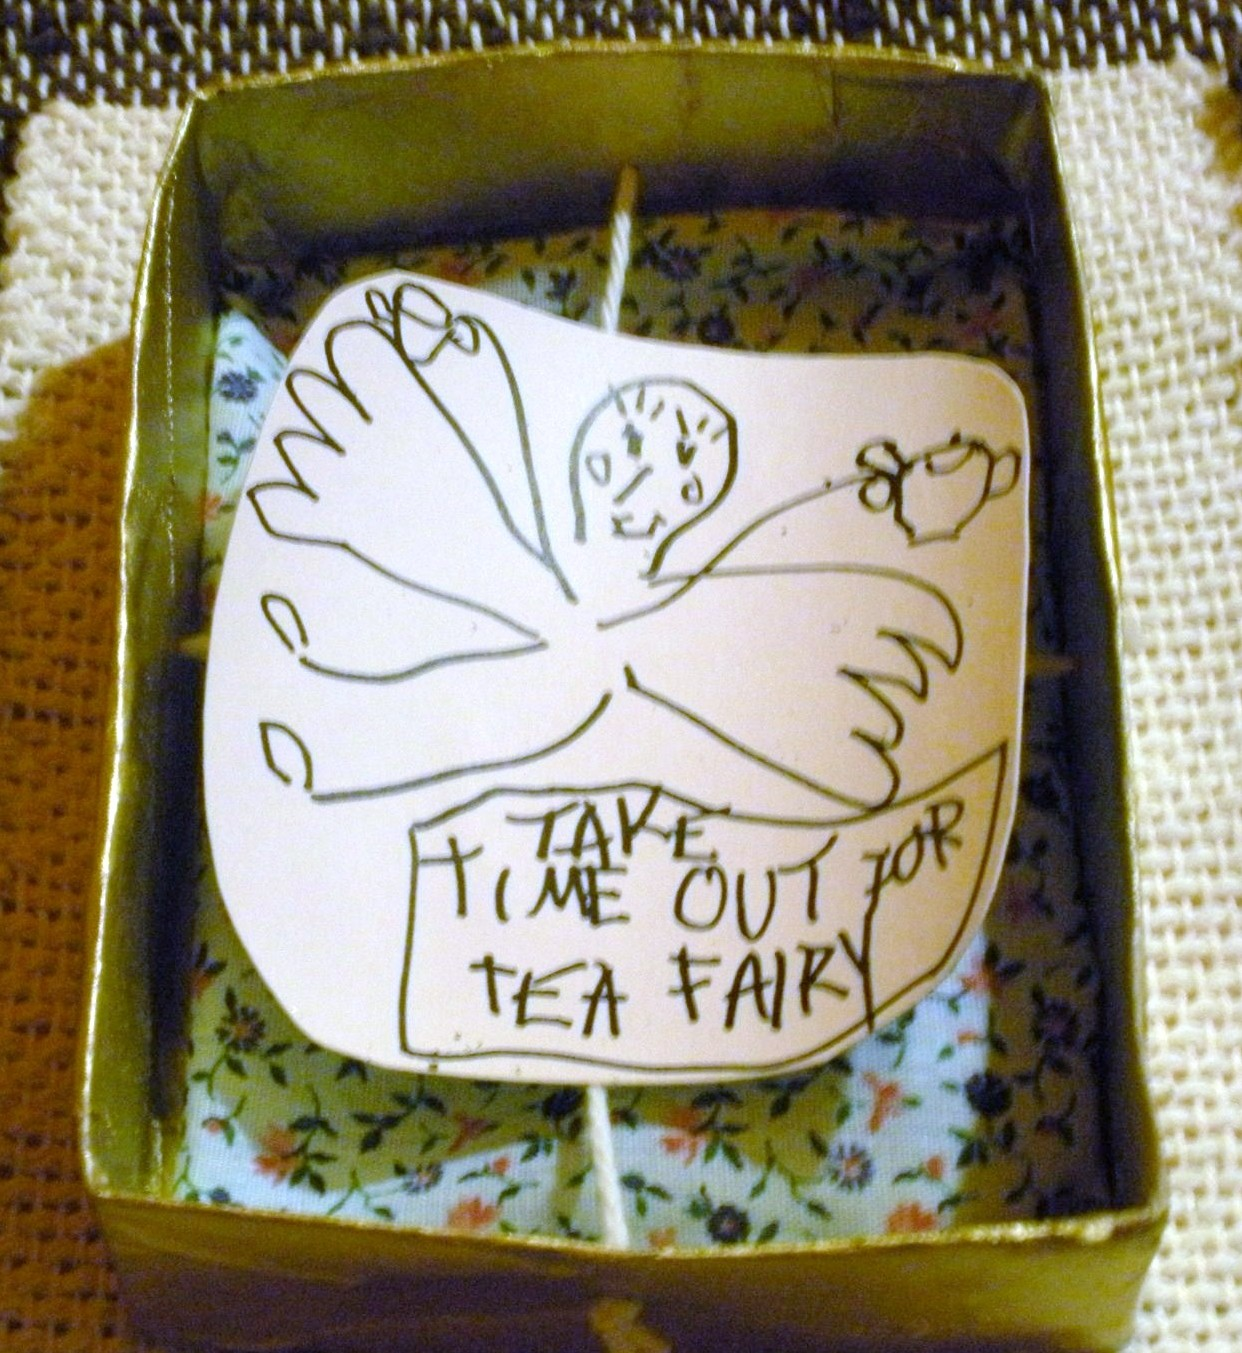 Take Time out for Tea Fairy.jpg